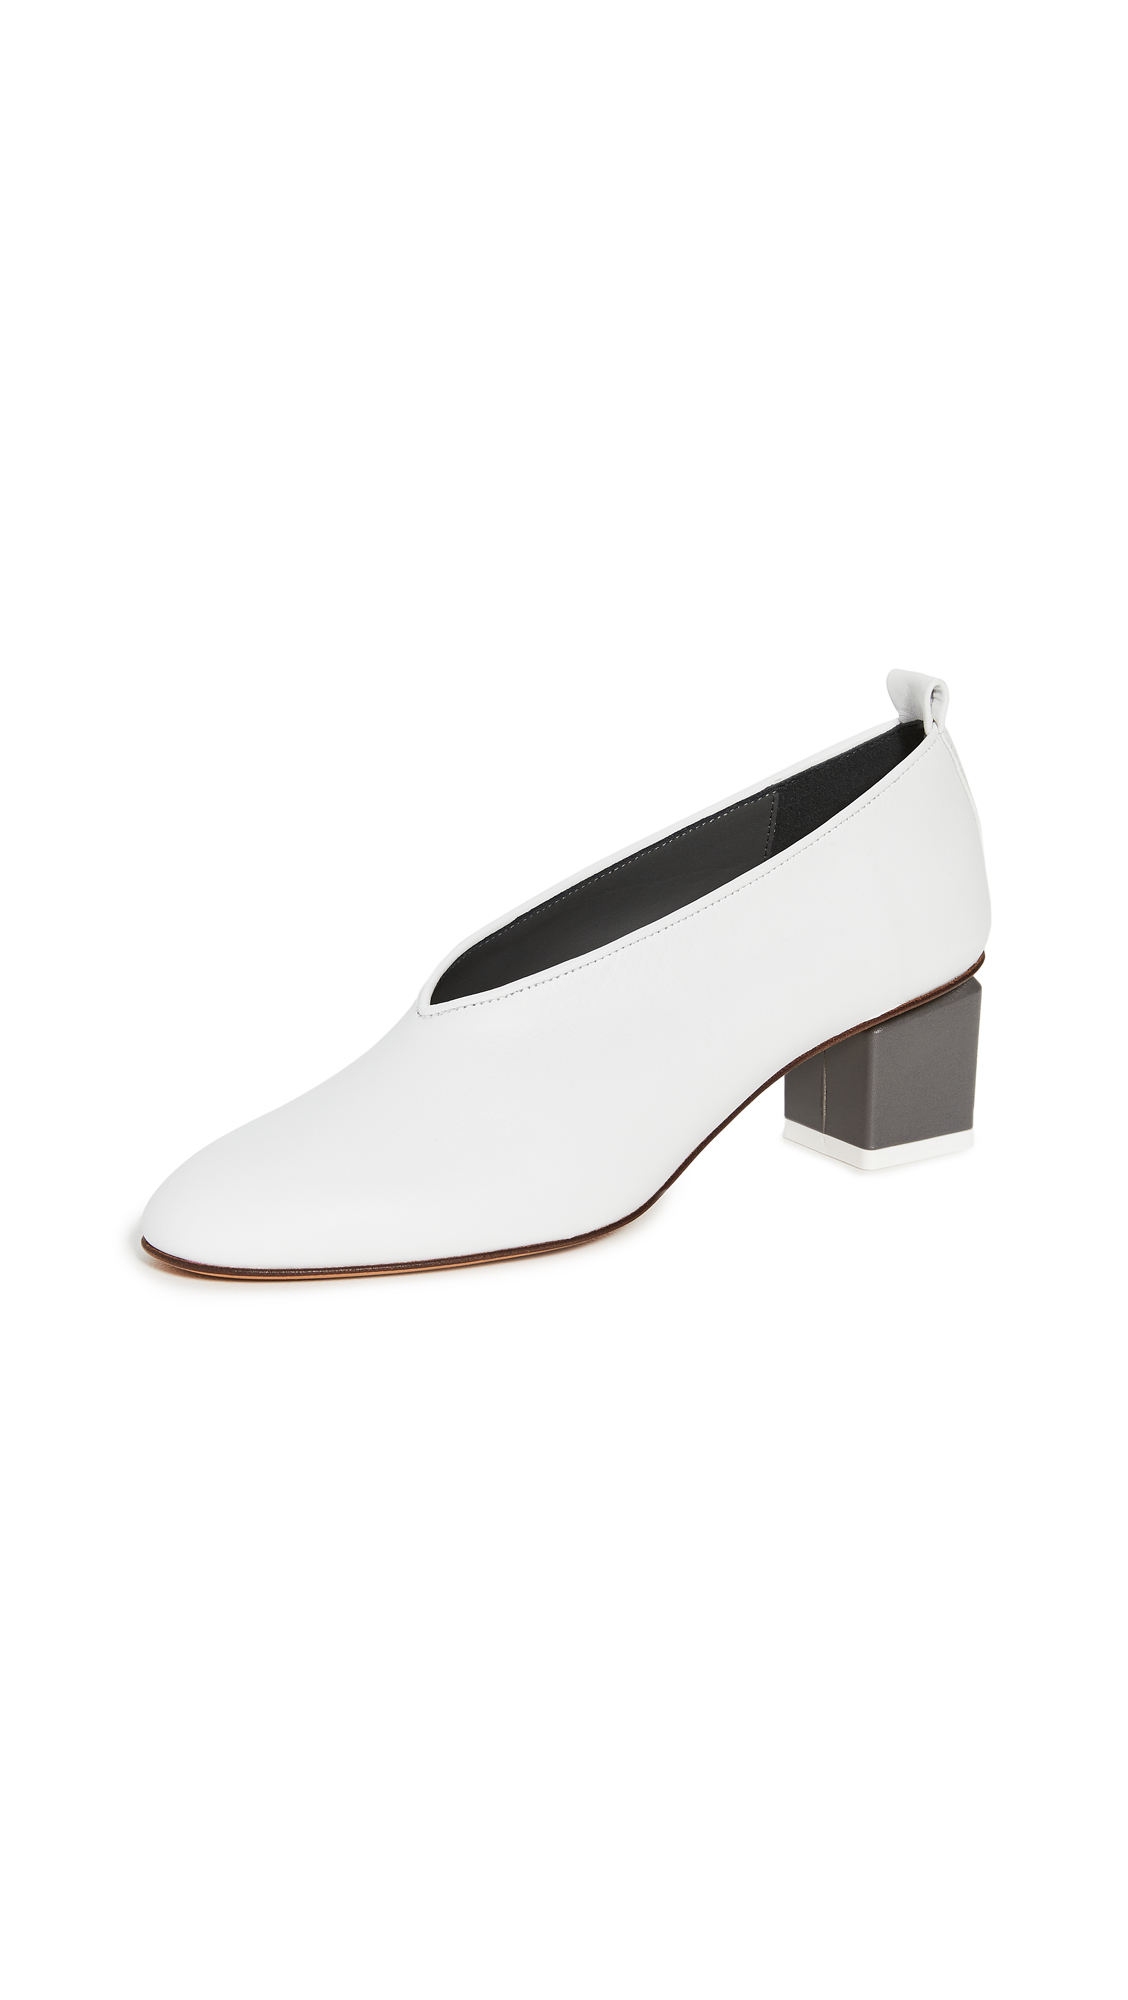 Buy Gray Matters Mildred Classica Pumps online, shop Gray Matters